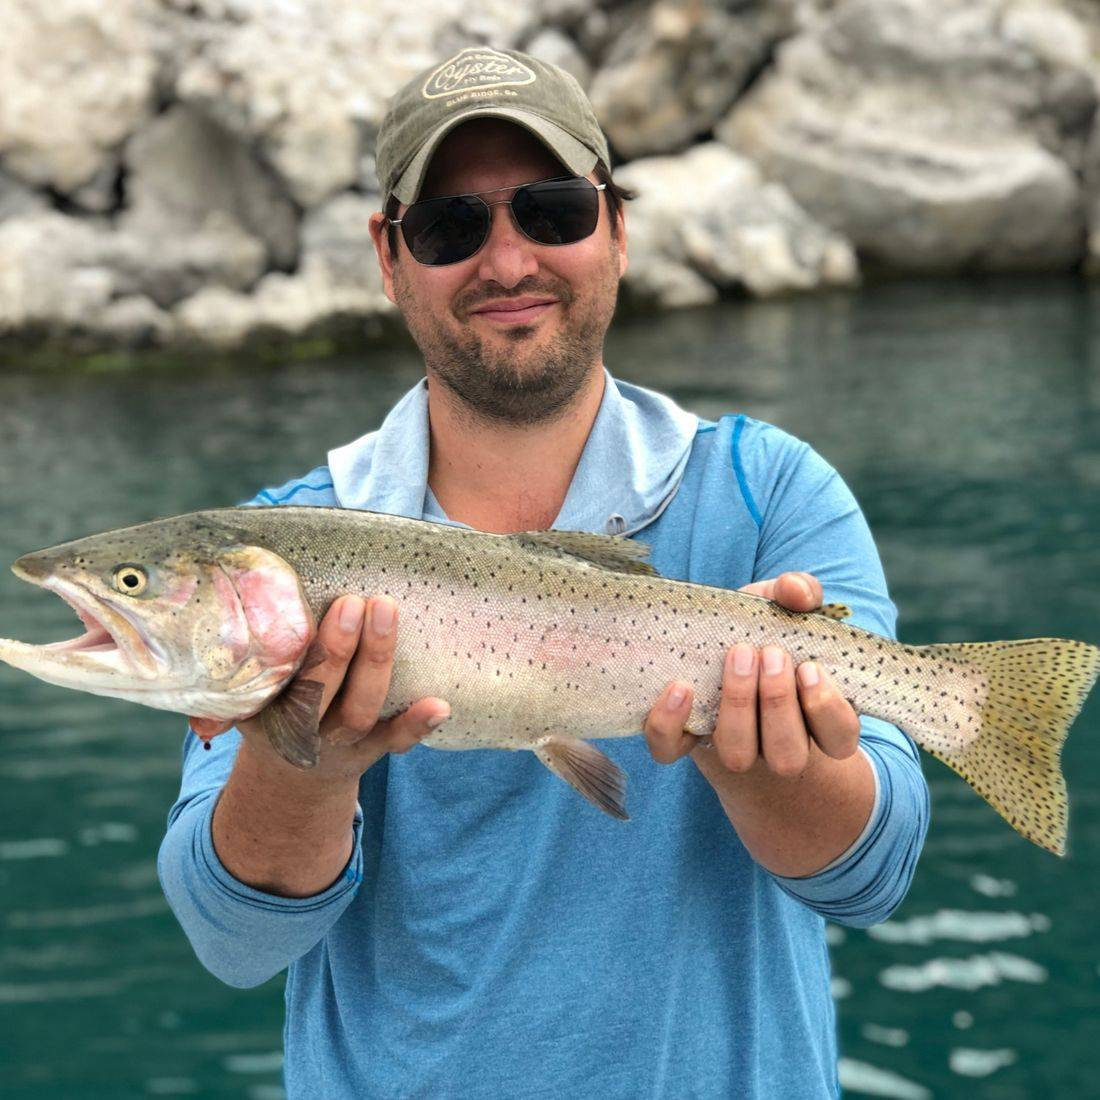 guide, pyramid lake guide, fly fishing guide pyramid lake, cutthroat trout, best guide pyramid lake, top pyramid lake guides